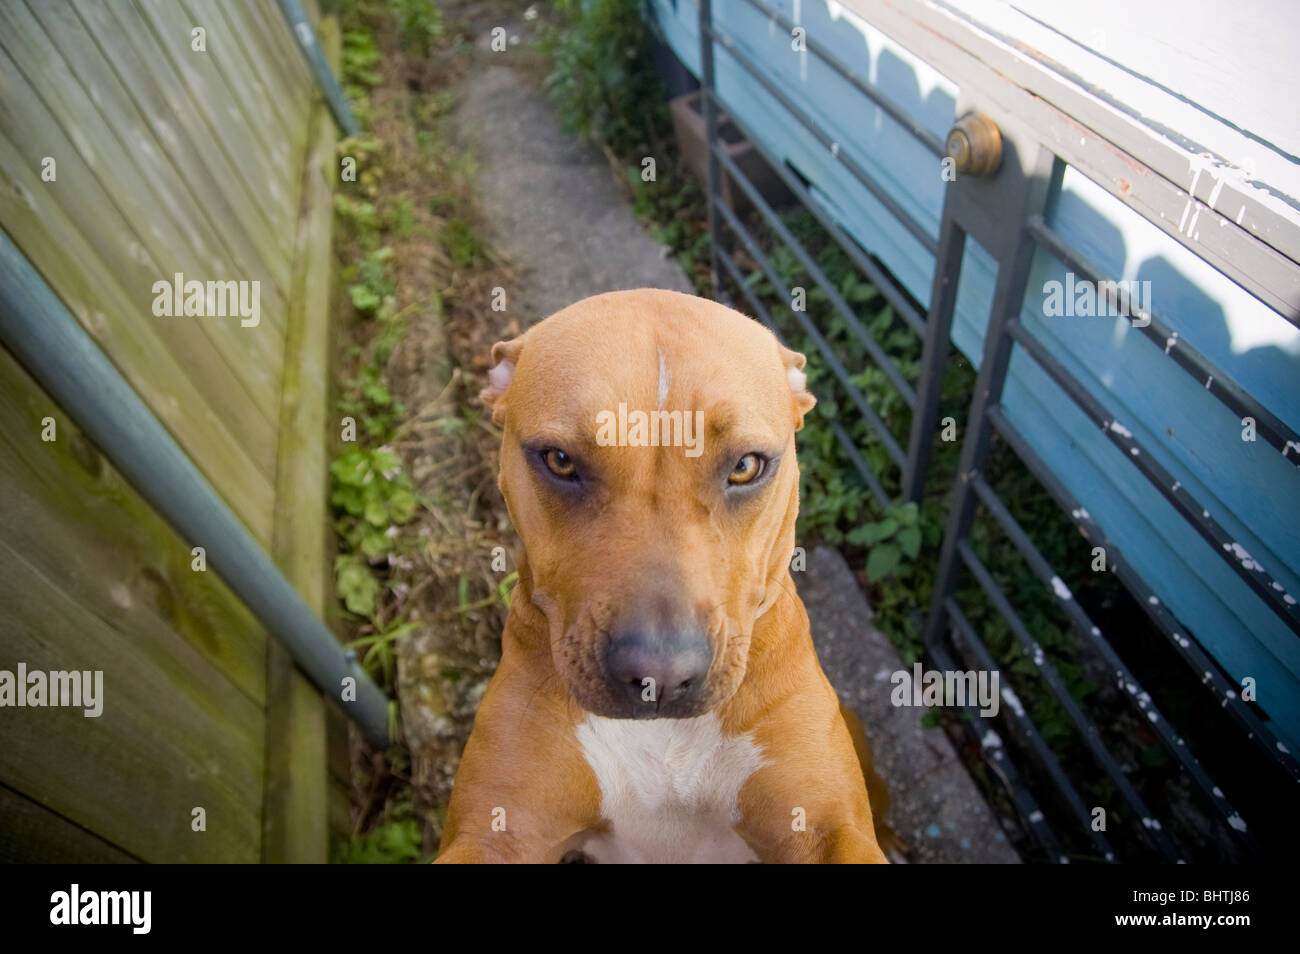 A pit bull with his ears down stand up in an alleyway - Stock Image